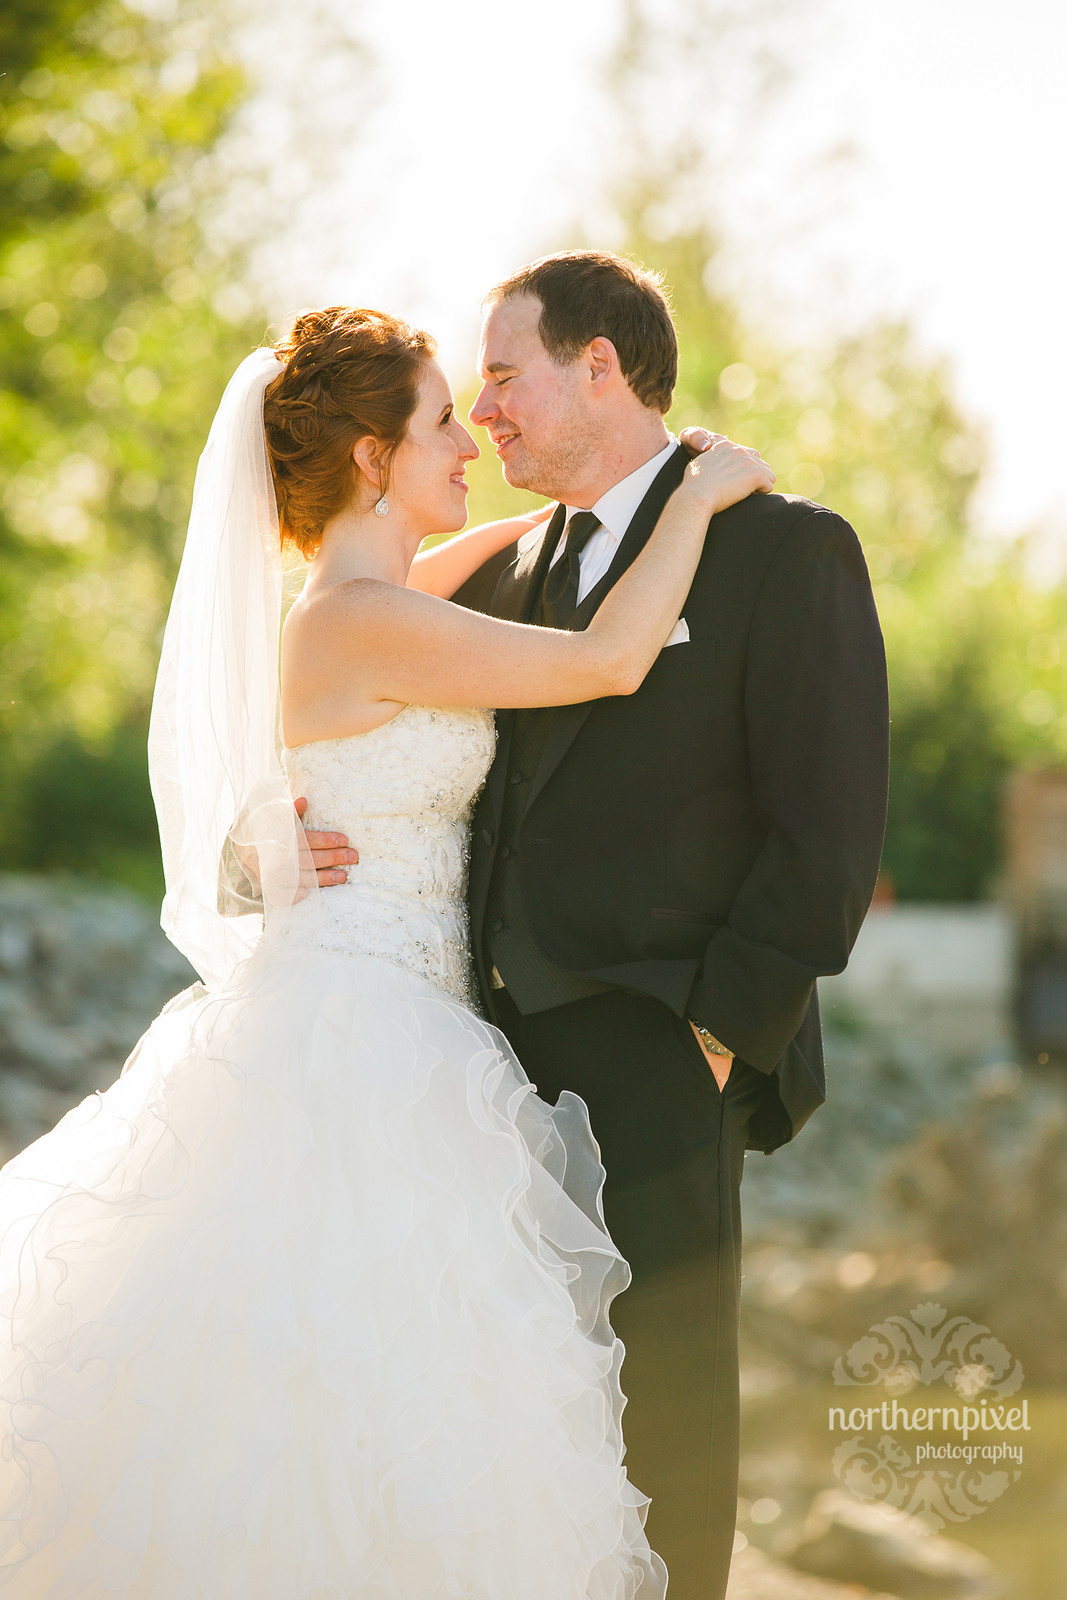 Kendra & Jarrett - Prince George BC Wedding